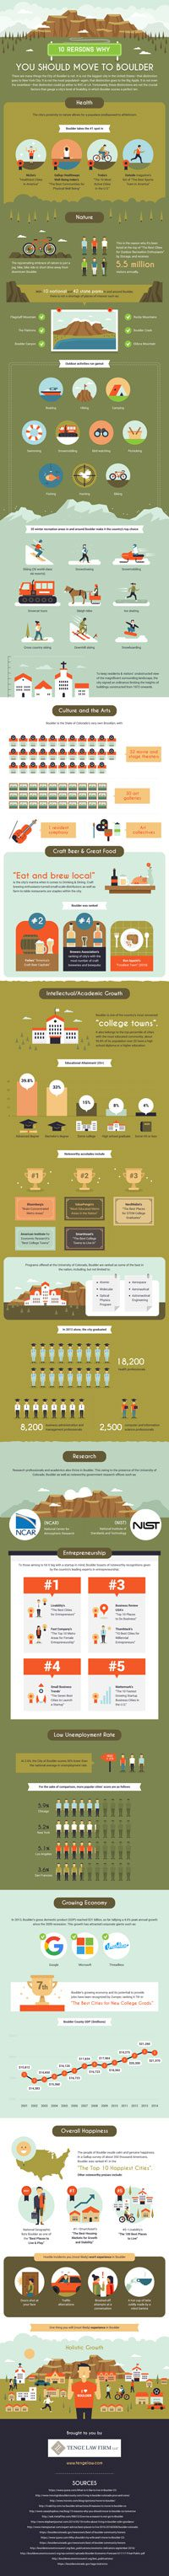 Top 10 Reasons to Move to Boulder. (Infographic courtesy of Tenge Law Firm).